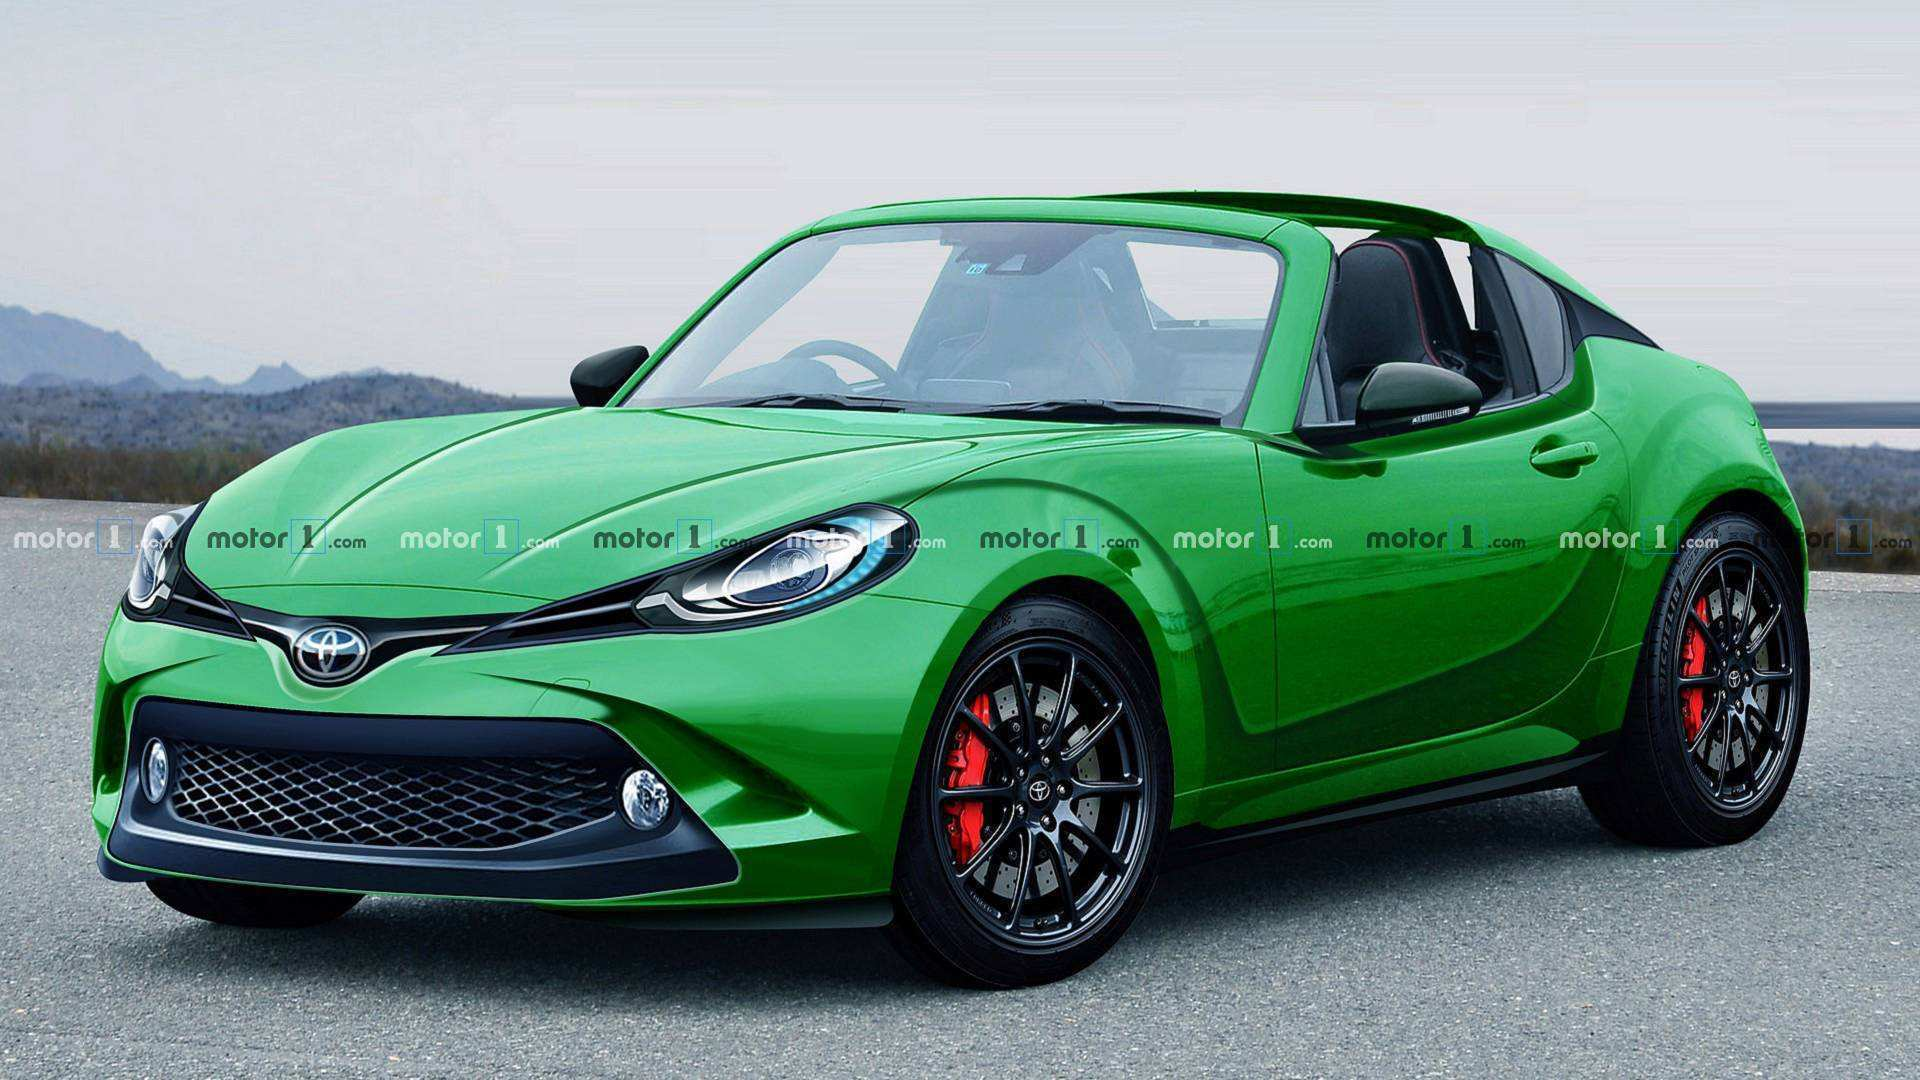 67 All New 2020 Mazda Miata Engine by 2020 Mazda Miata